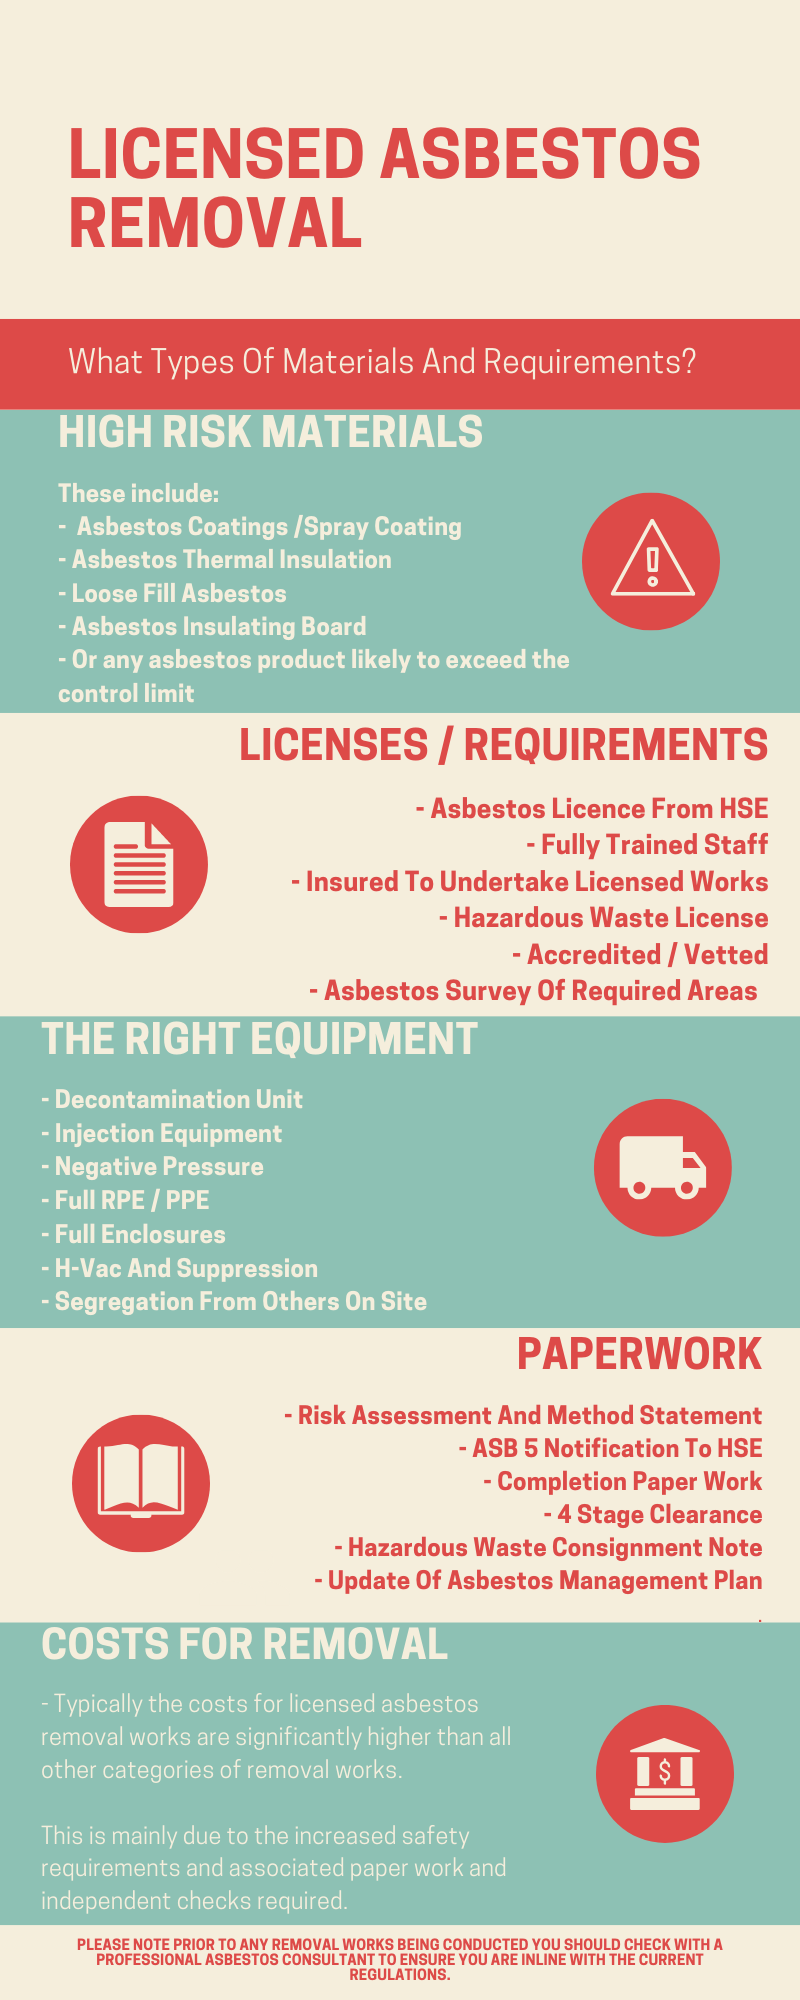 Licesned Asbestos Removal New.png